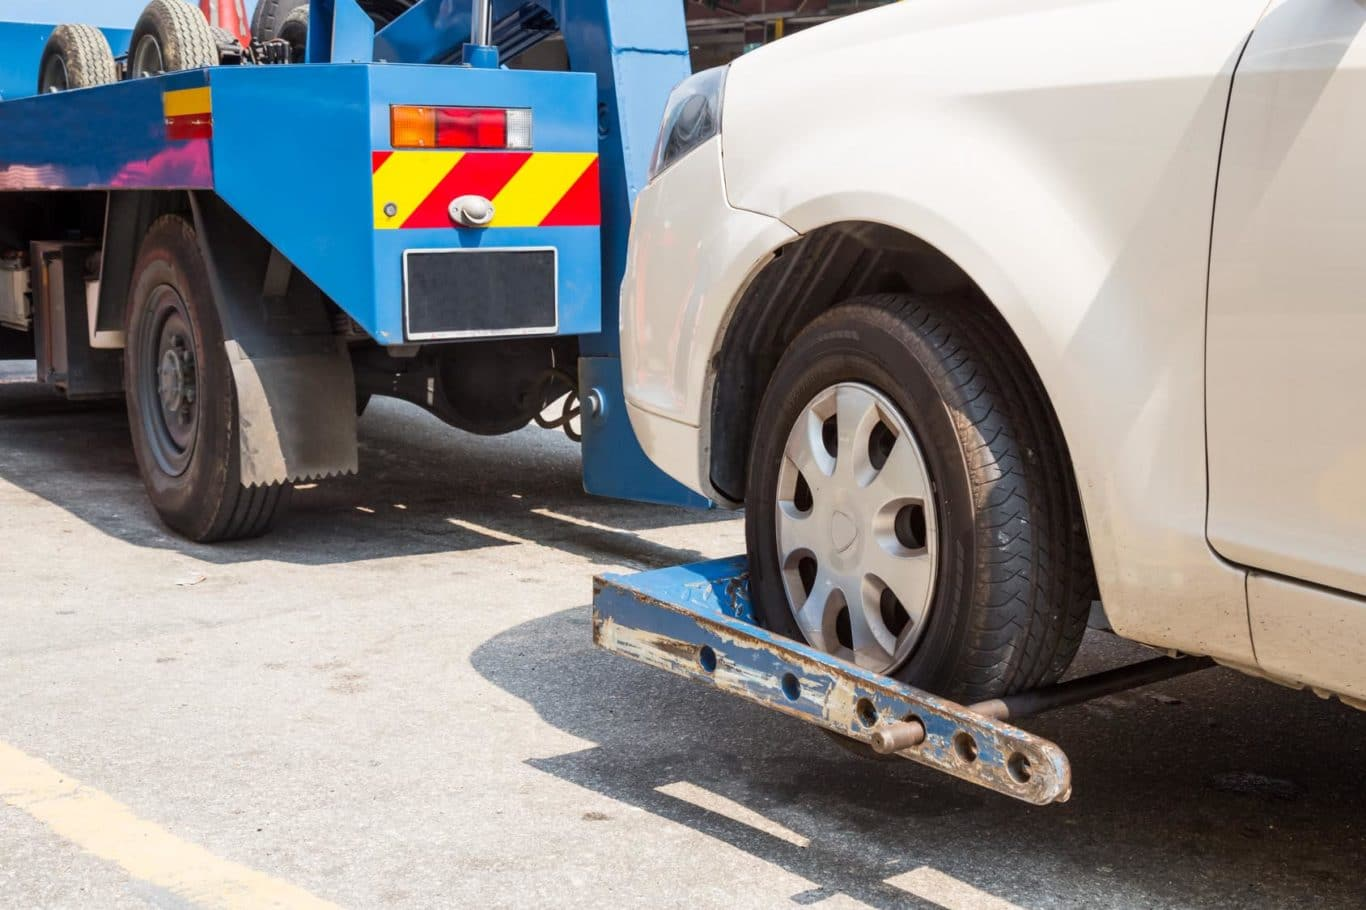 Tinahely expert Towing services